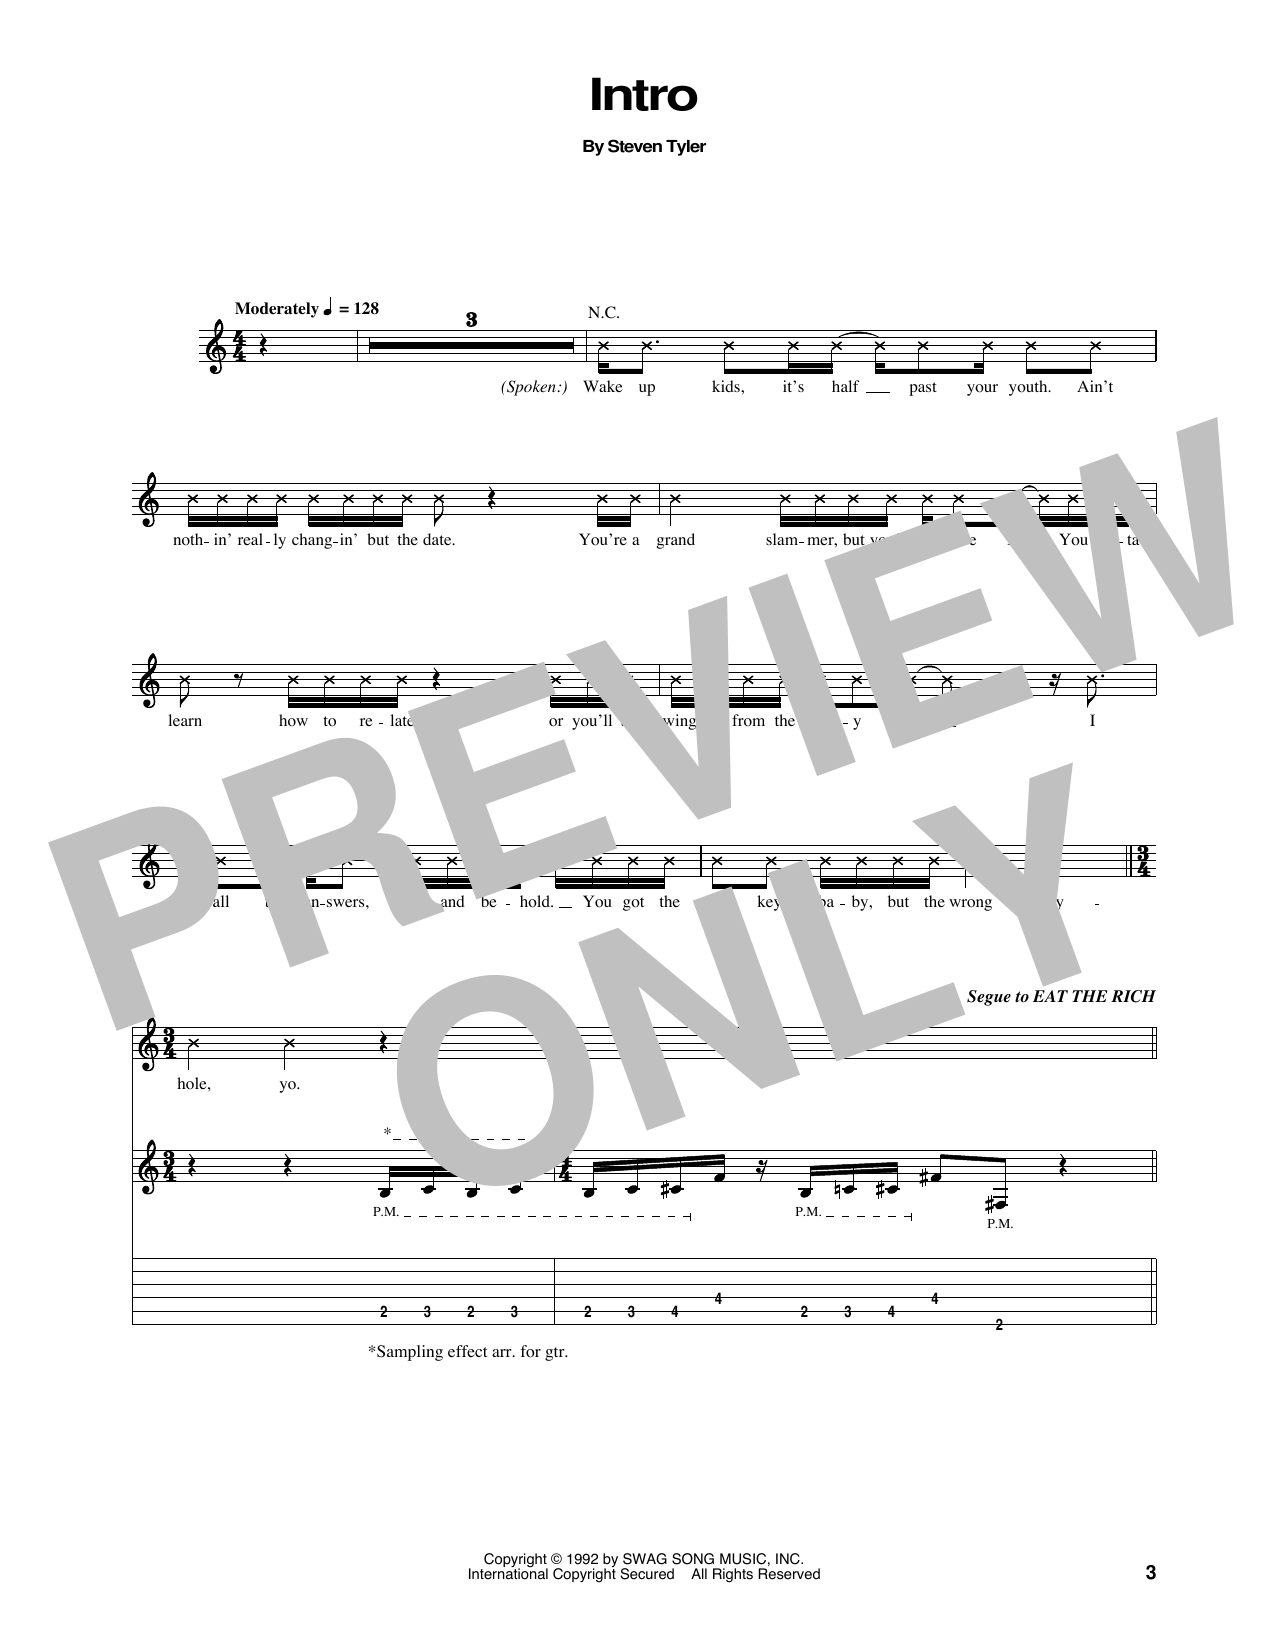 Intro Sheet Music